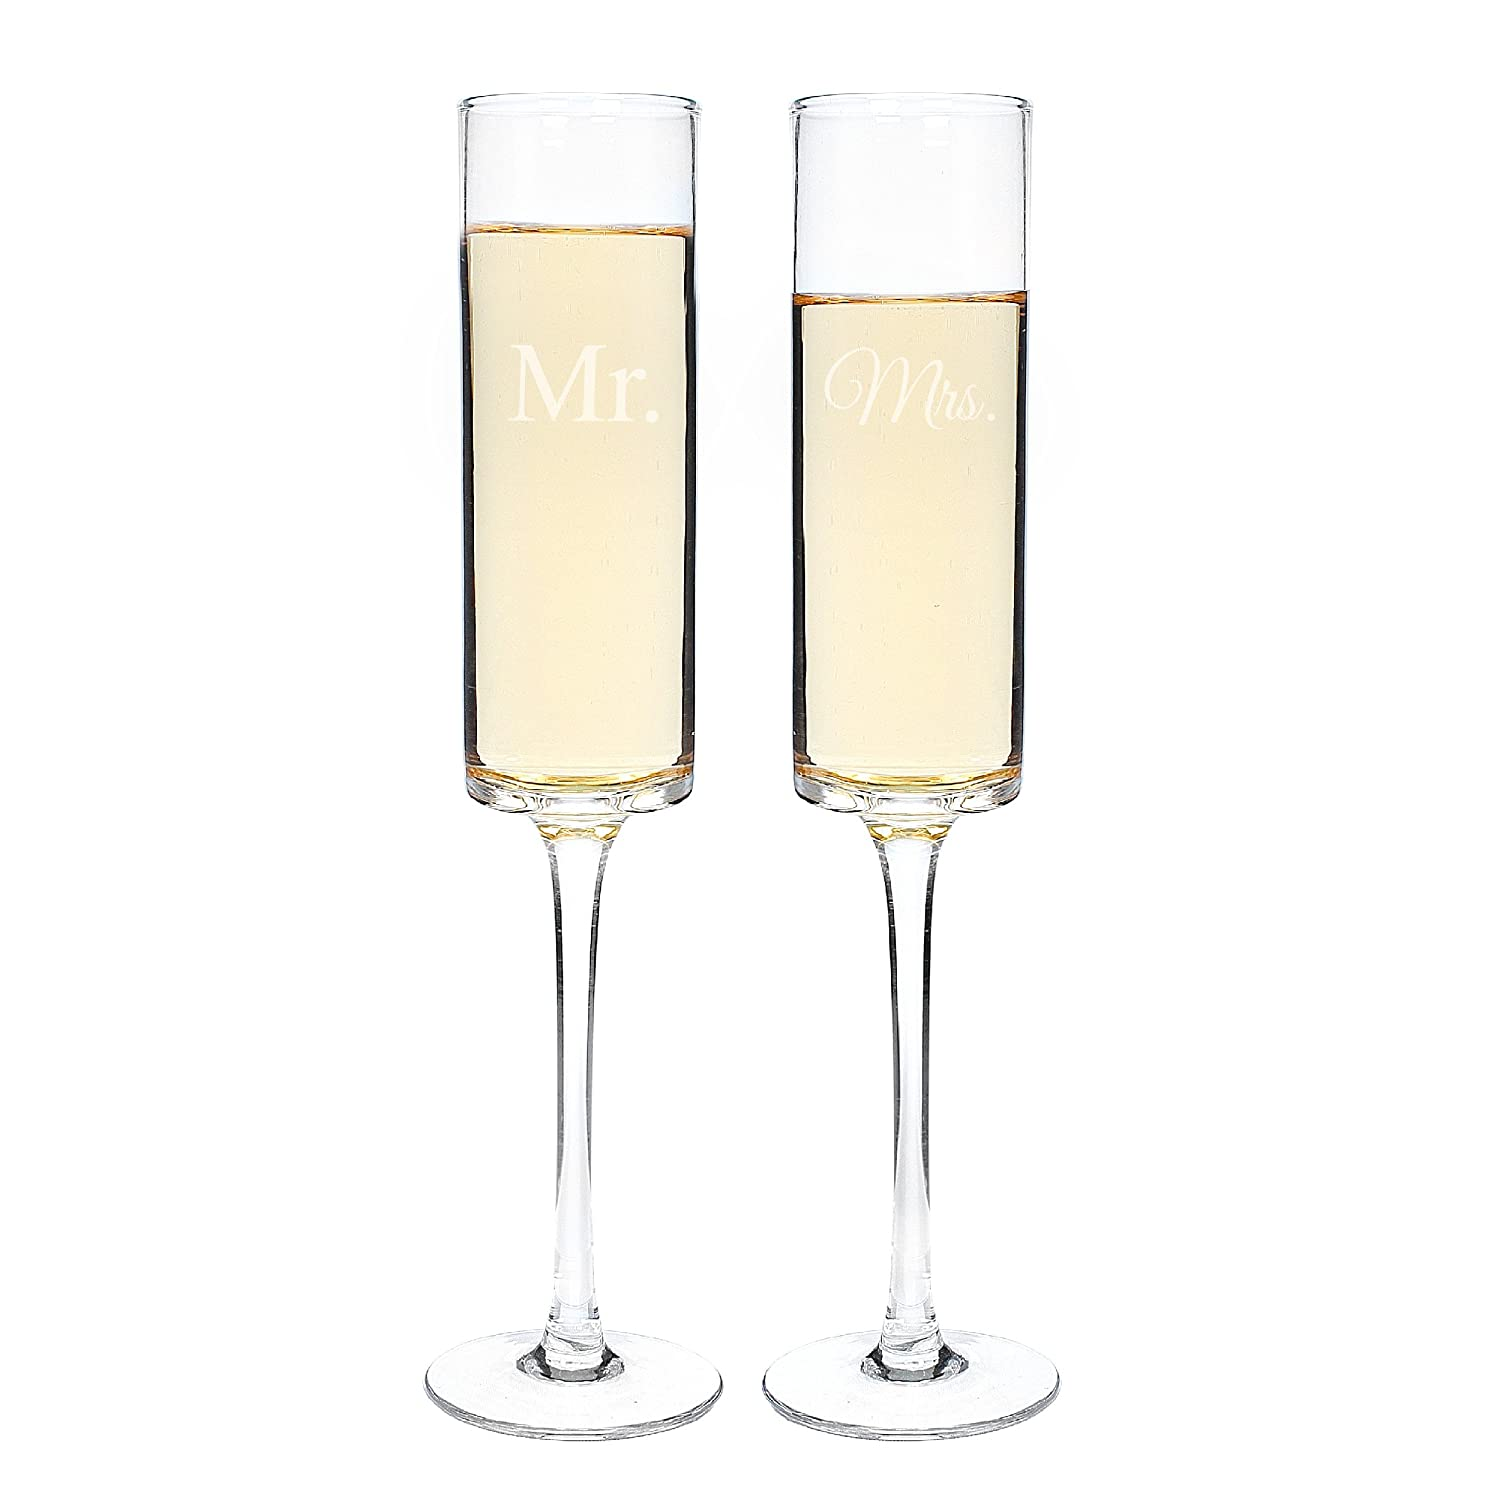 amazoncom  cathy's concepts mr  mrs contemporary champagne  - amazoncom  cathy's concepts mr  mrs contemporary champagne flutes mrmrs champagne flutes champagne glasses